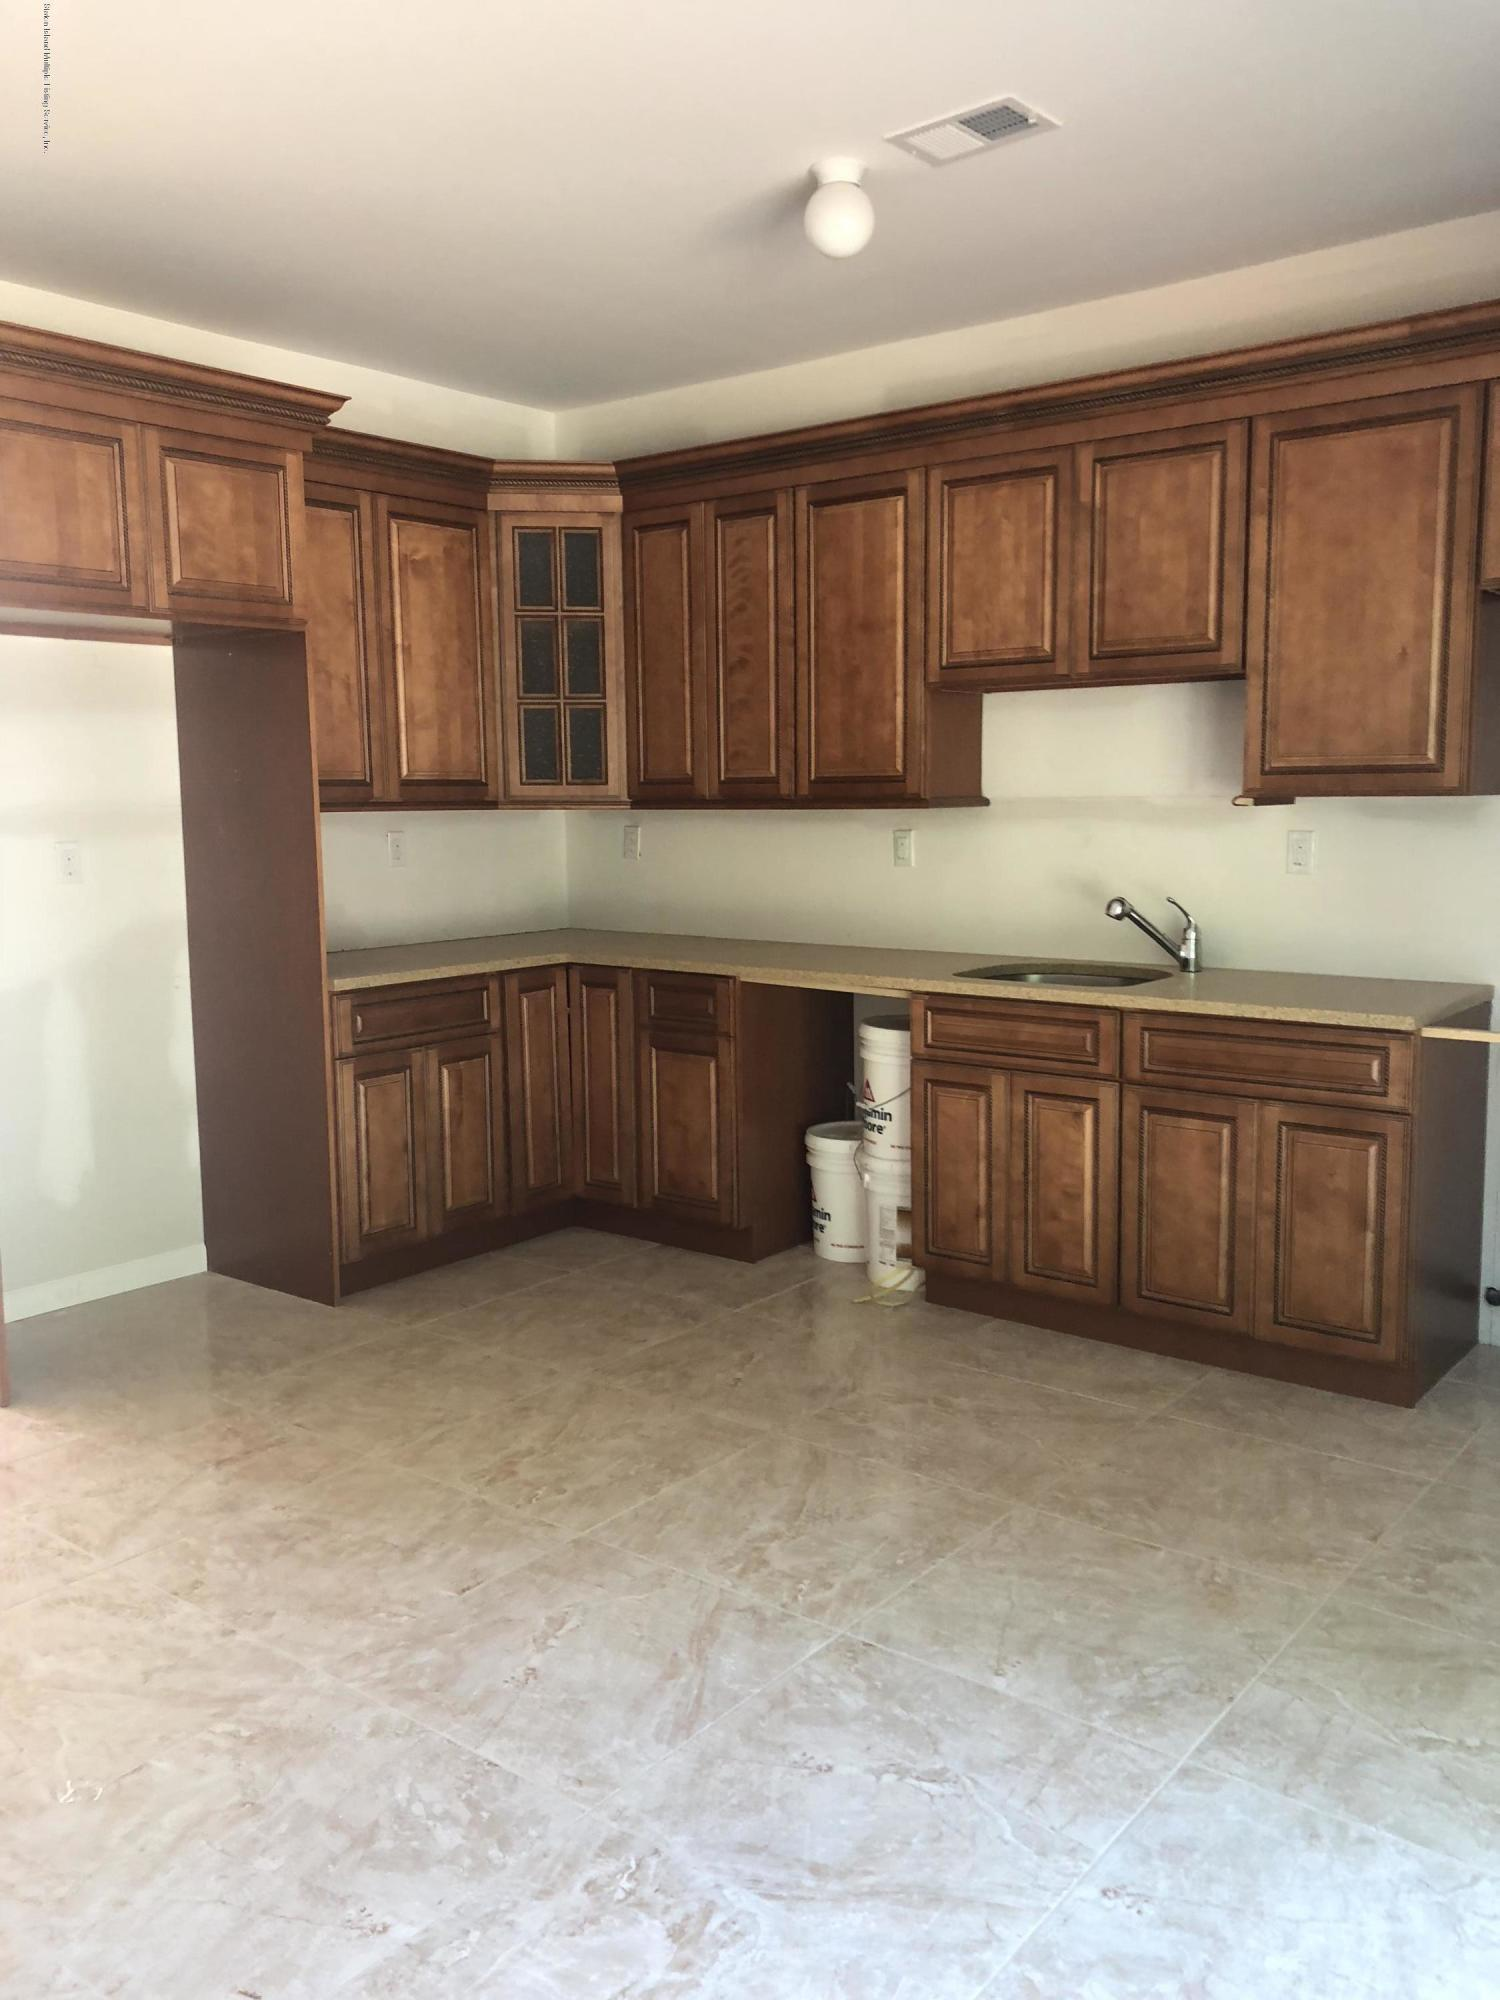 Single Family - Attached 40 Eunice Place   Staten Island, NY 10303, MLS-1121207-4